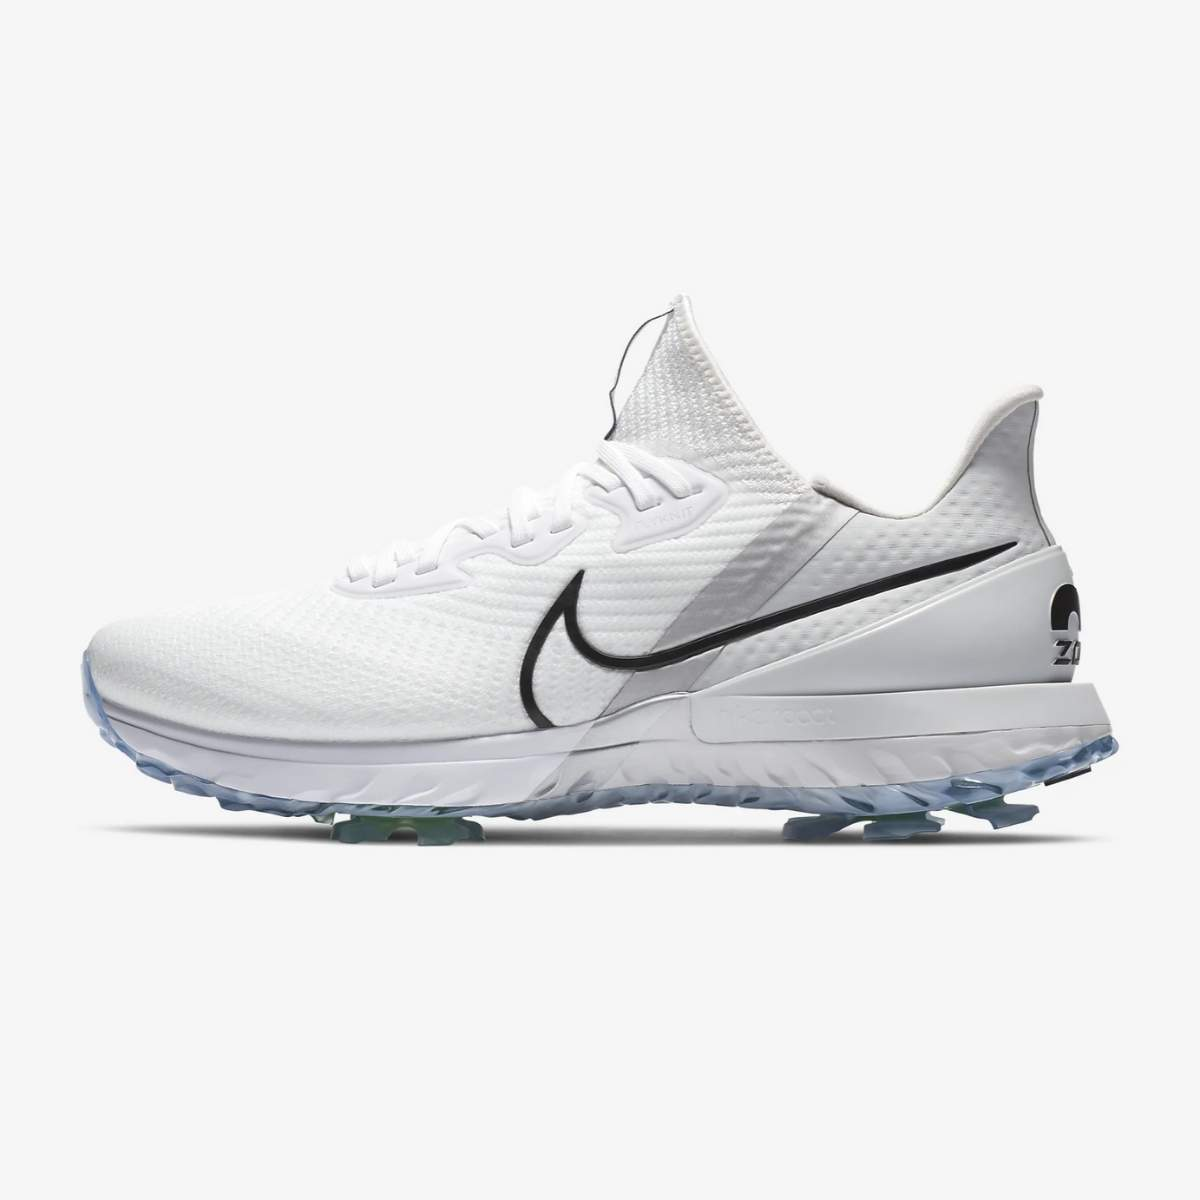 Nike Men's Air Zoom Infinity Tour White Golf Shoe